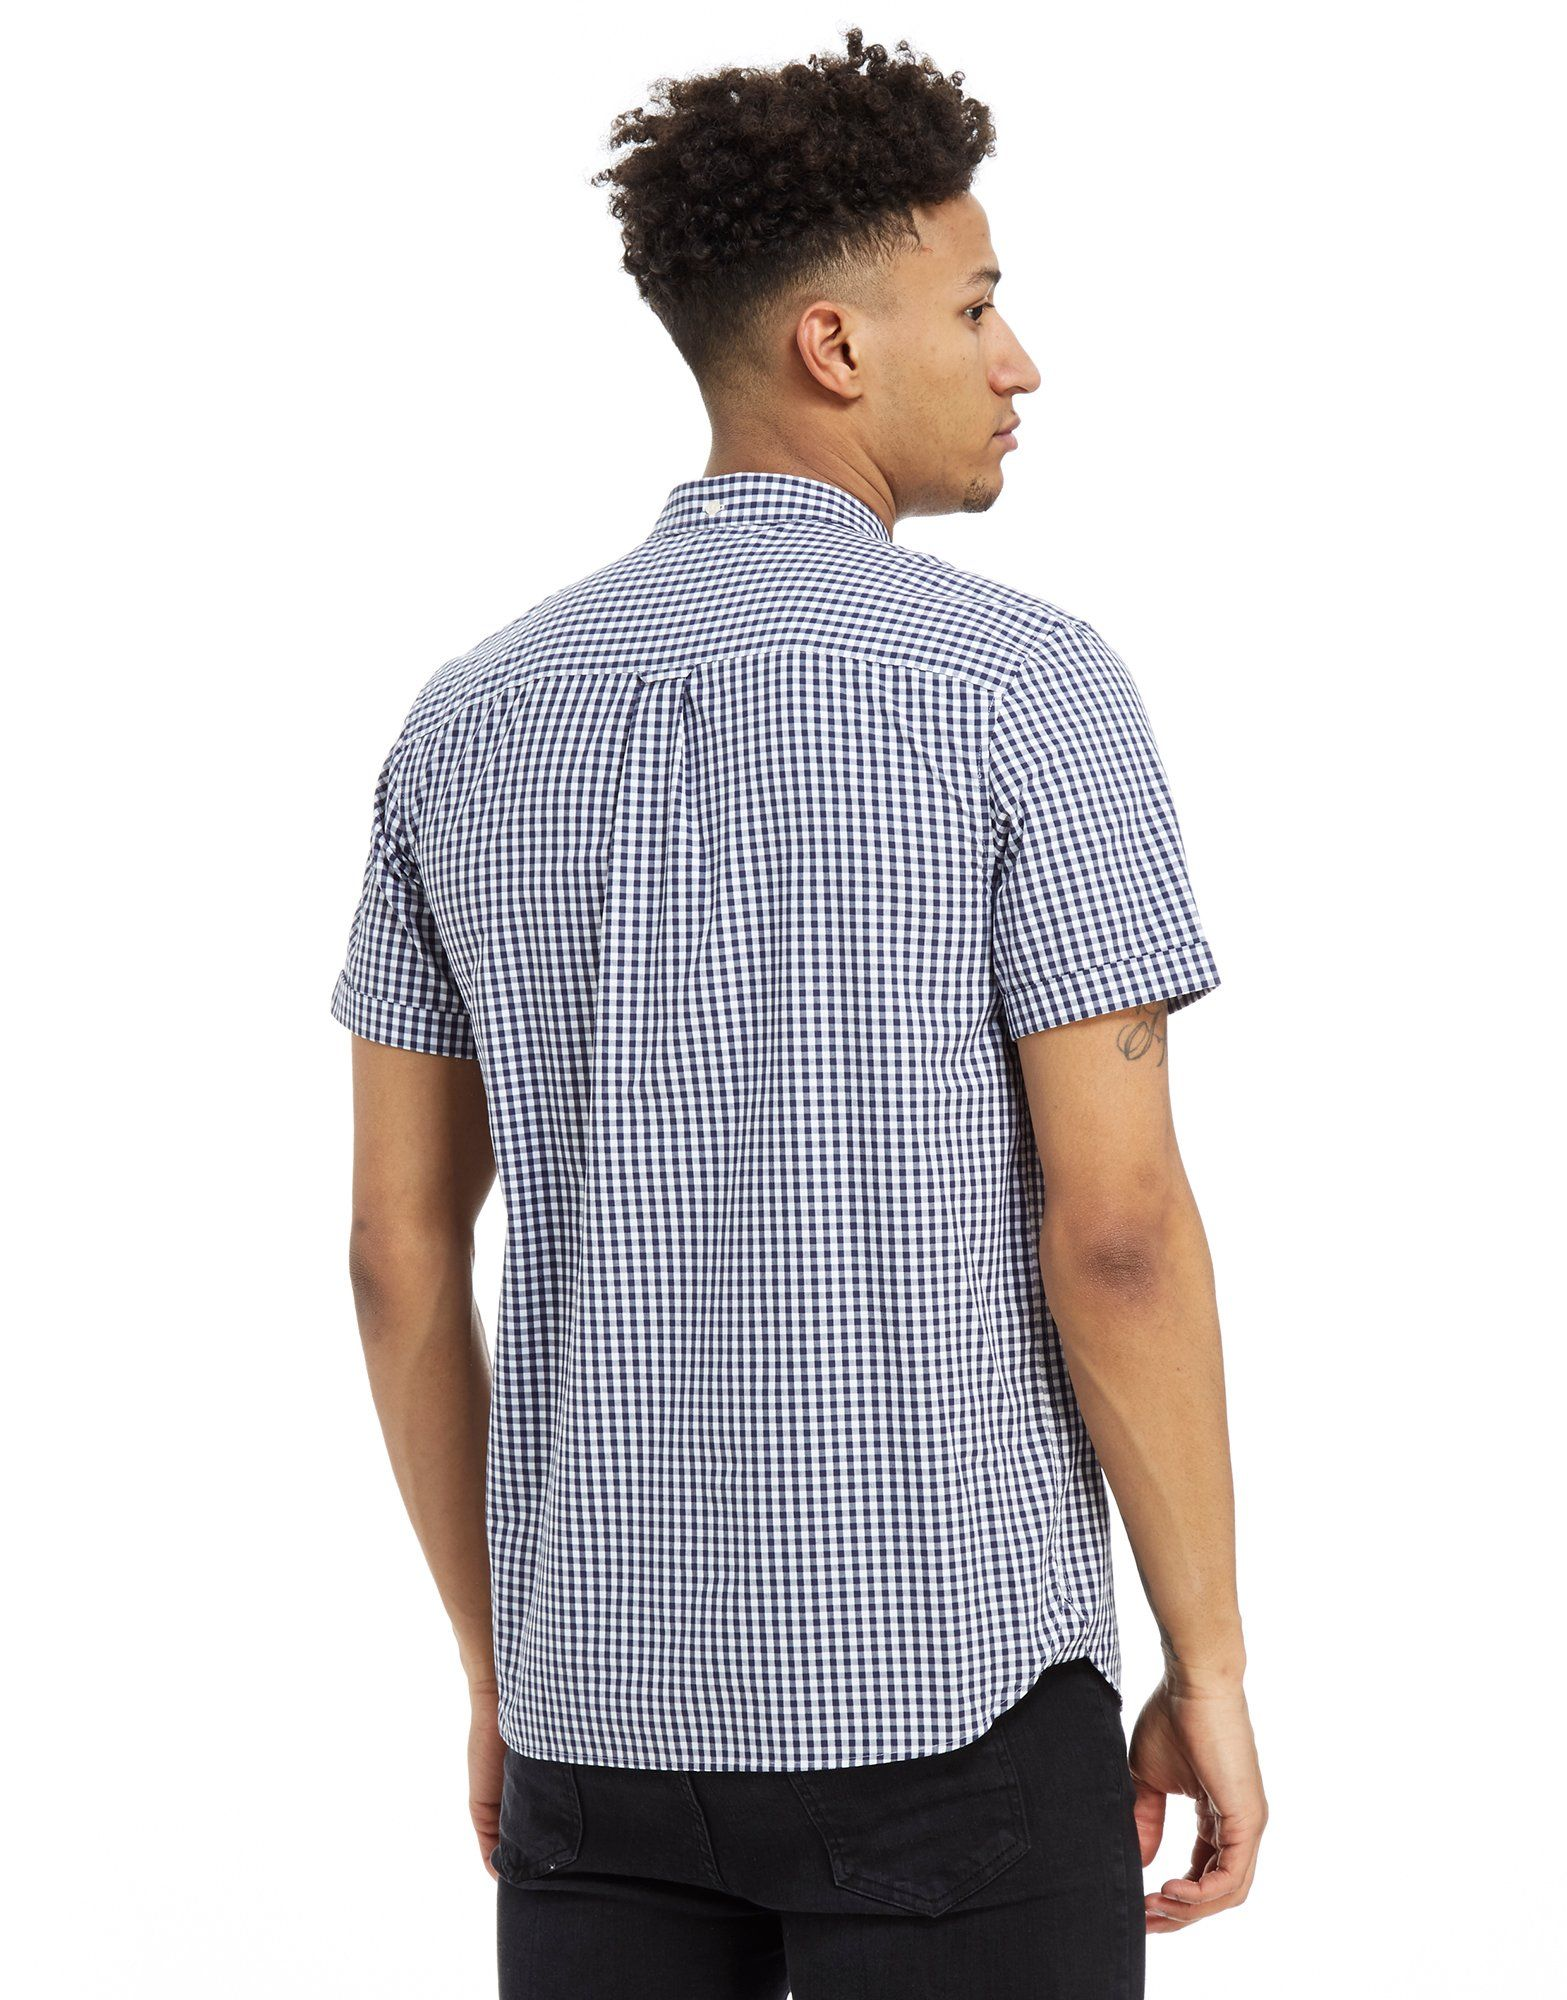 Lyle & Scott Short Sleeve Gingham Check Shirt Blau